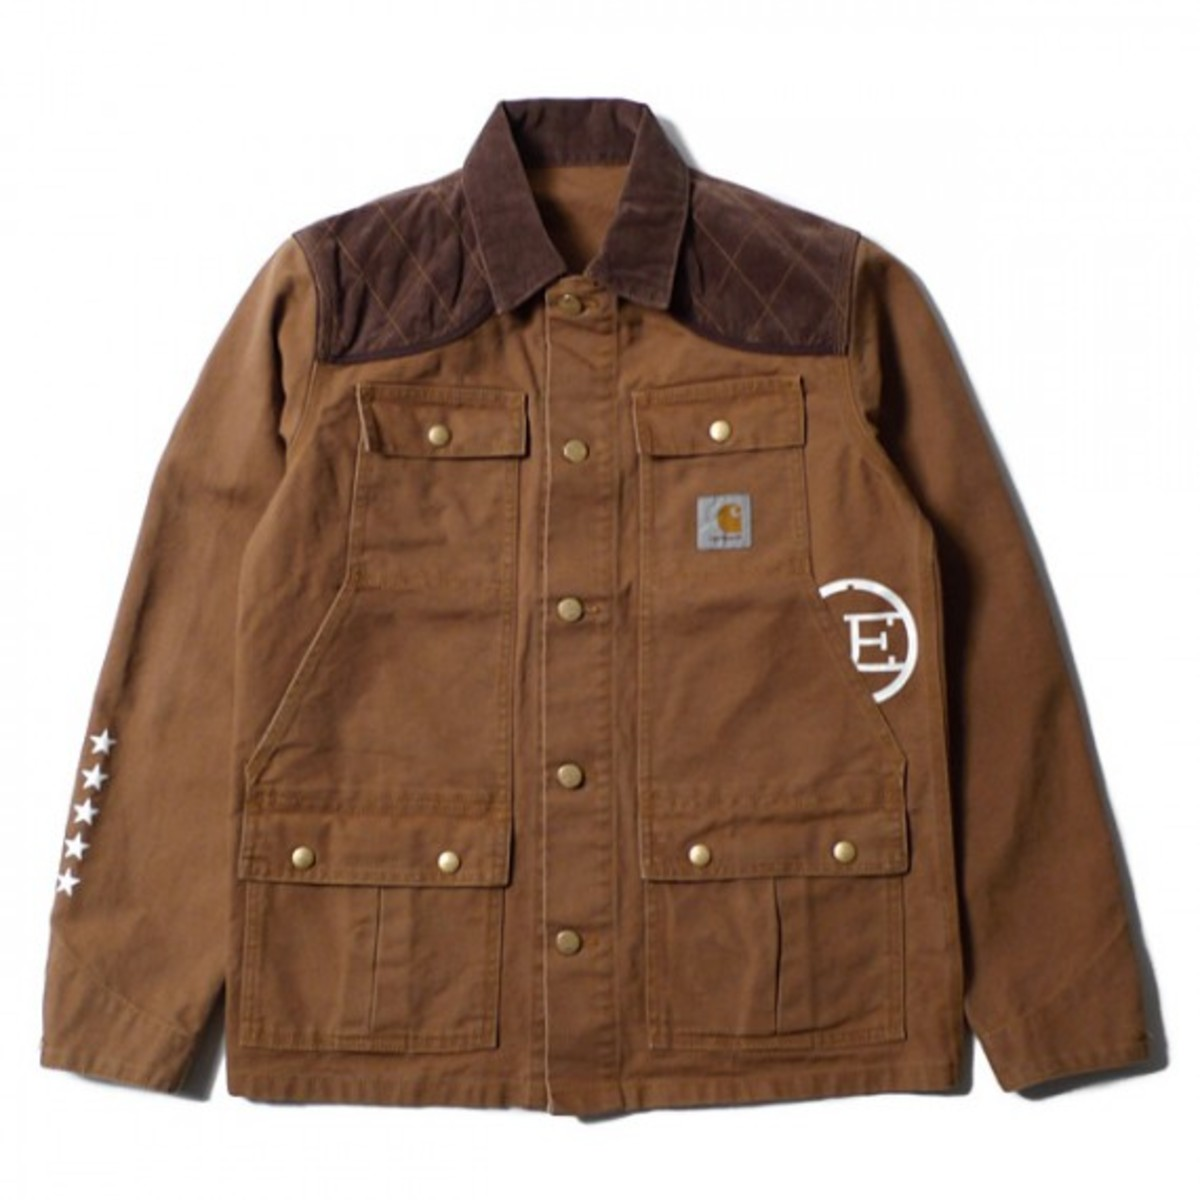 uniform-experiment-carhartt-hunting-jacket-brown-02